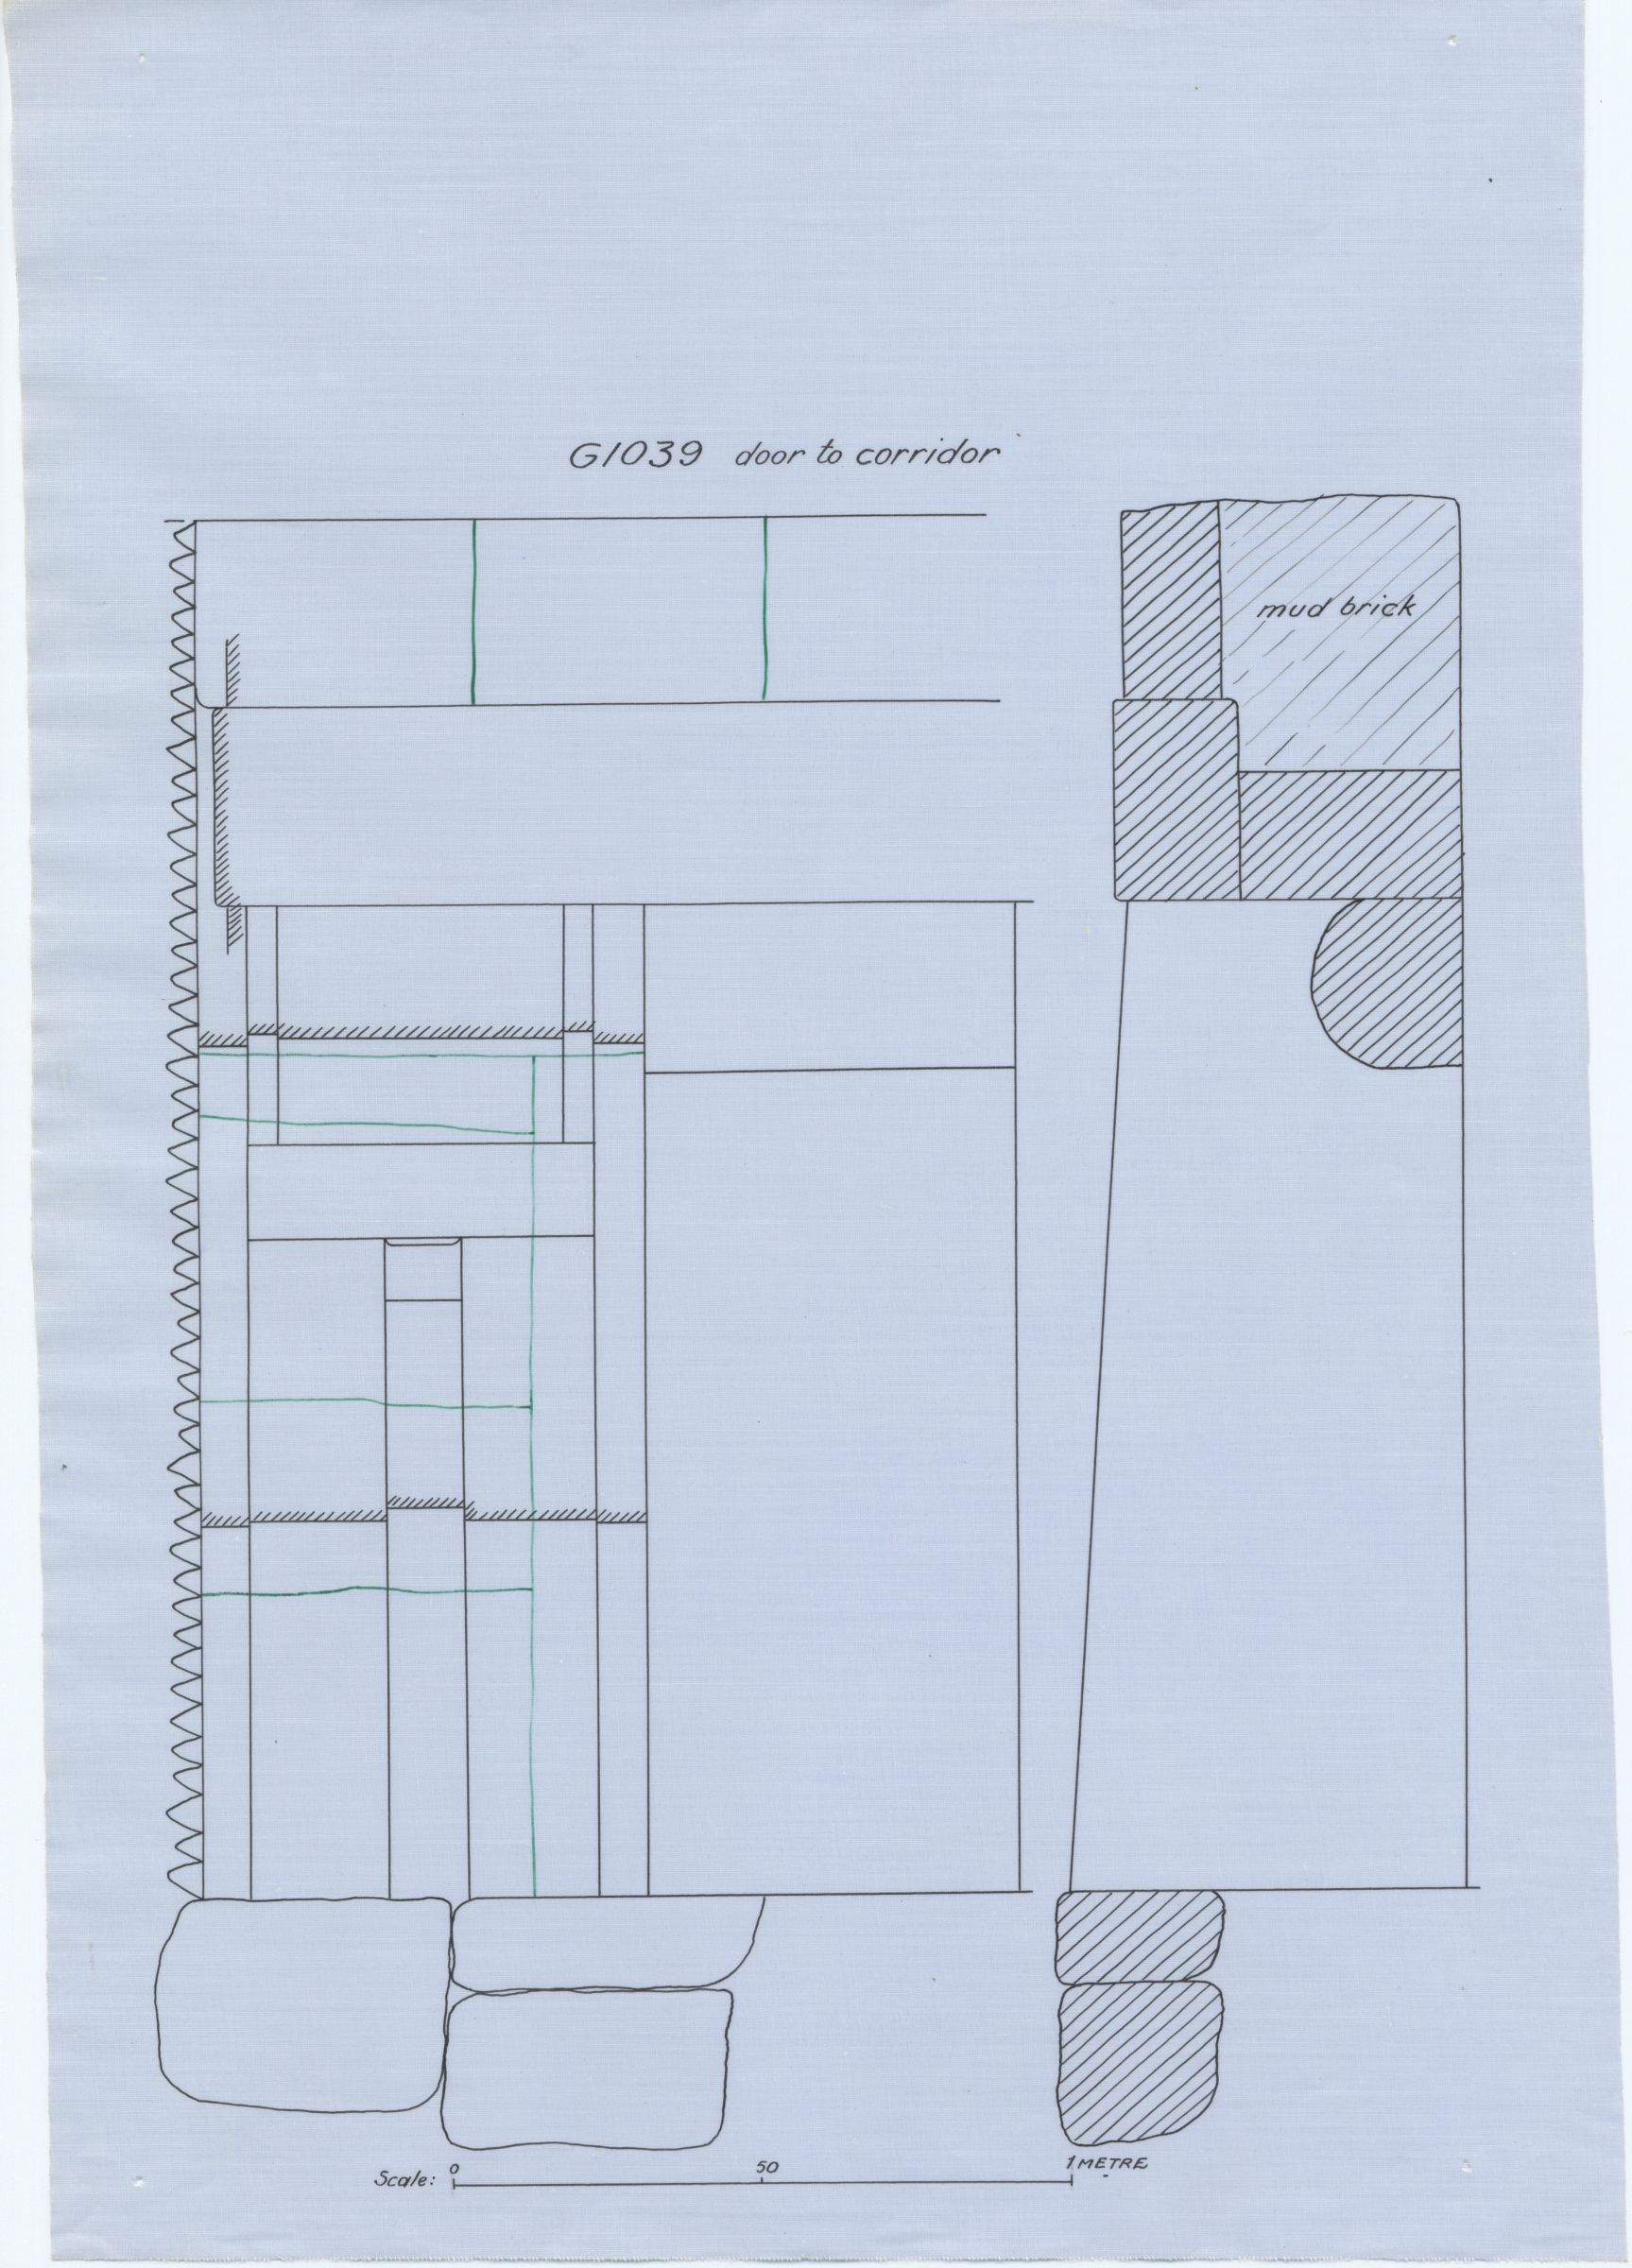 Maps and plans: G 1039, Section